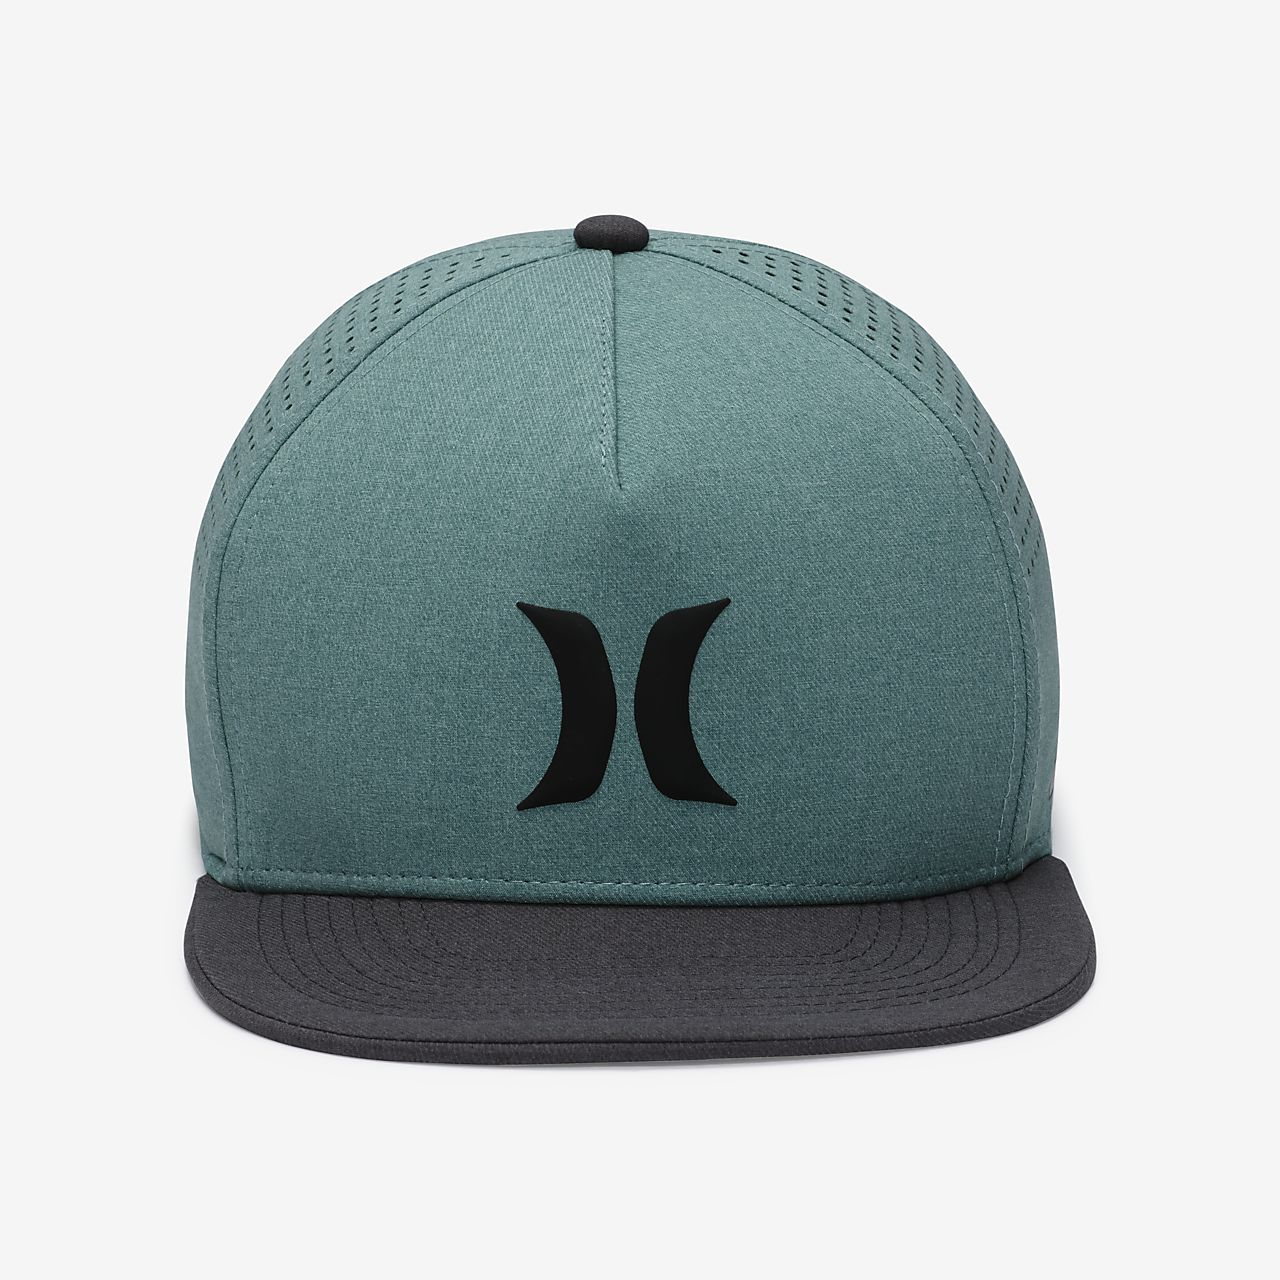 Hurley Dri-FIT Icon Men s Adjustable Hat. Nike.com AU ac5c2f10fae